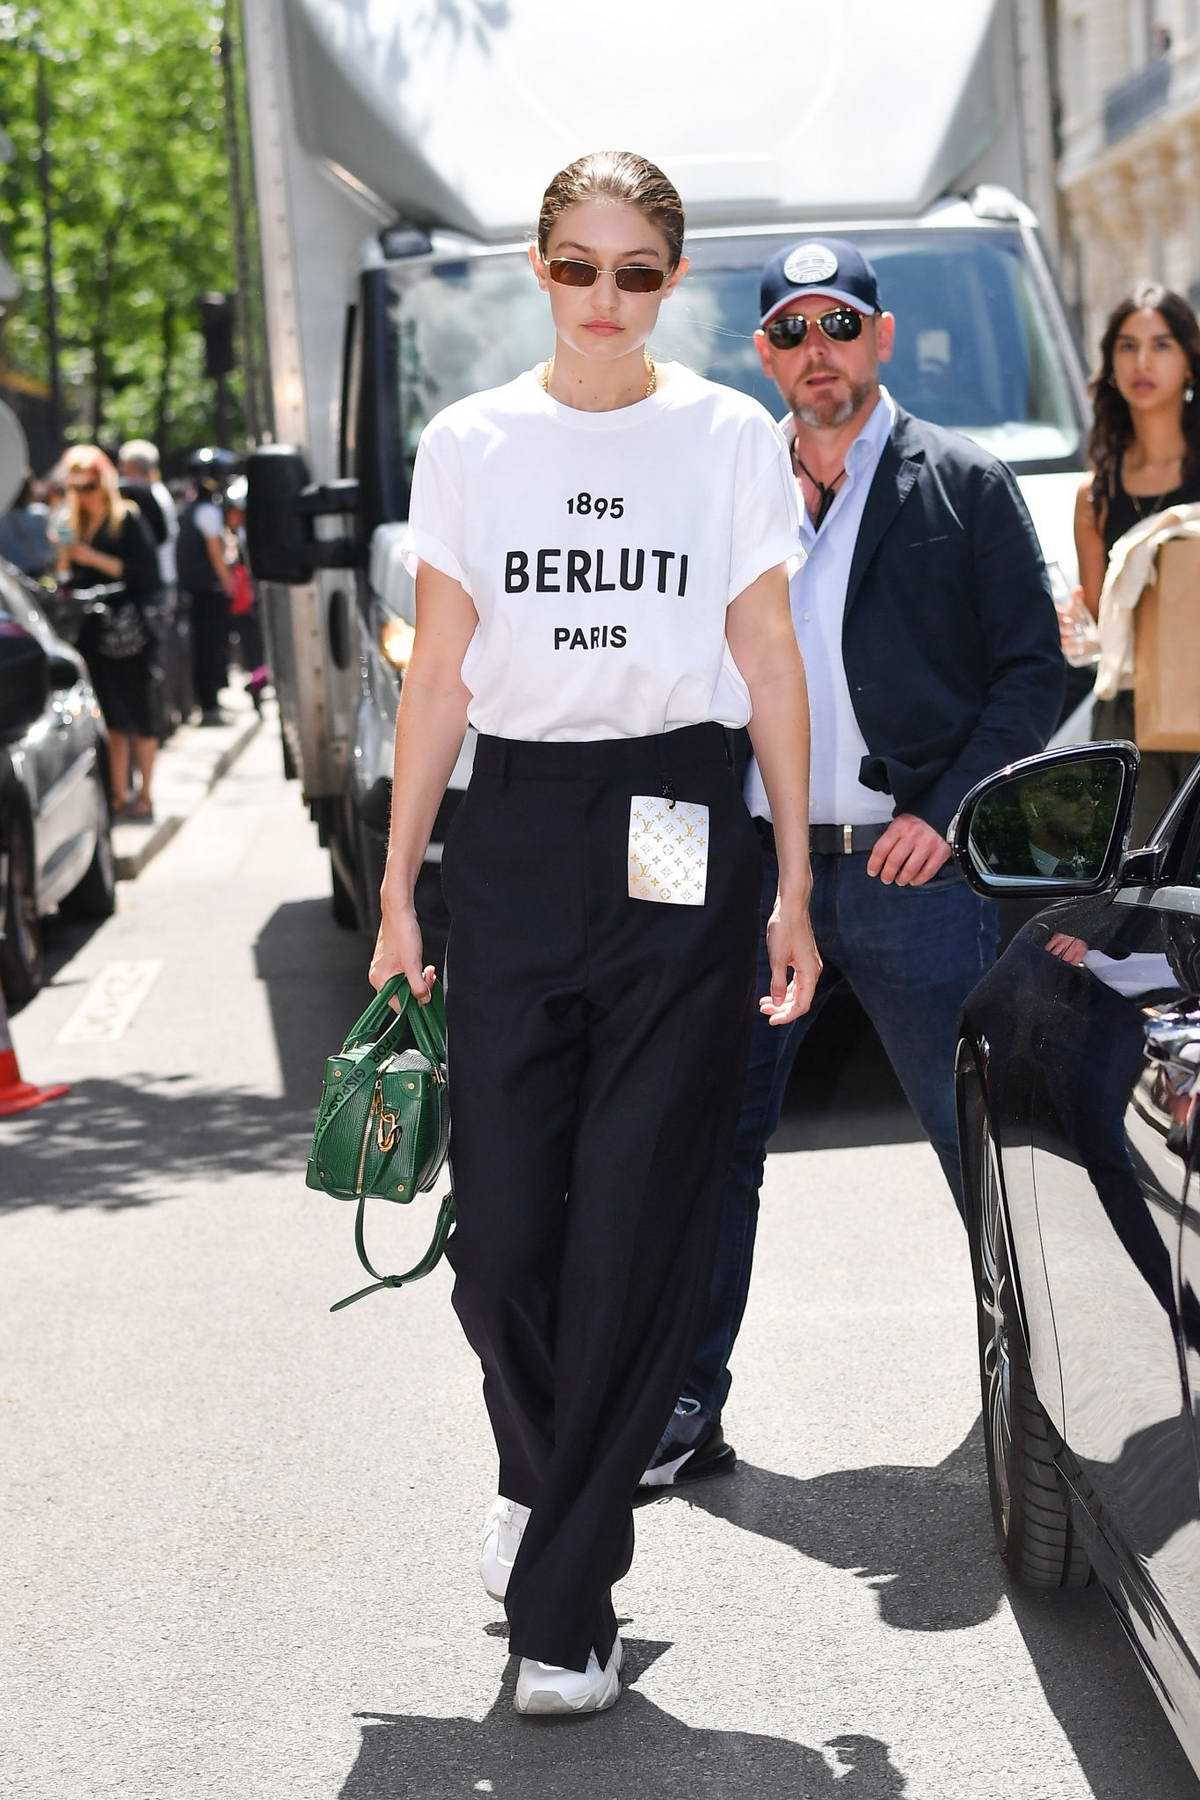 Gigi Hadid attends the Berluti Menswear Spring/Summer 2020 show during Paris Fashion Week in Paris, France